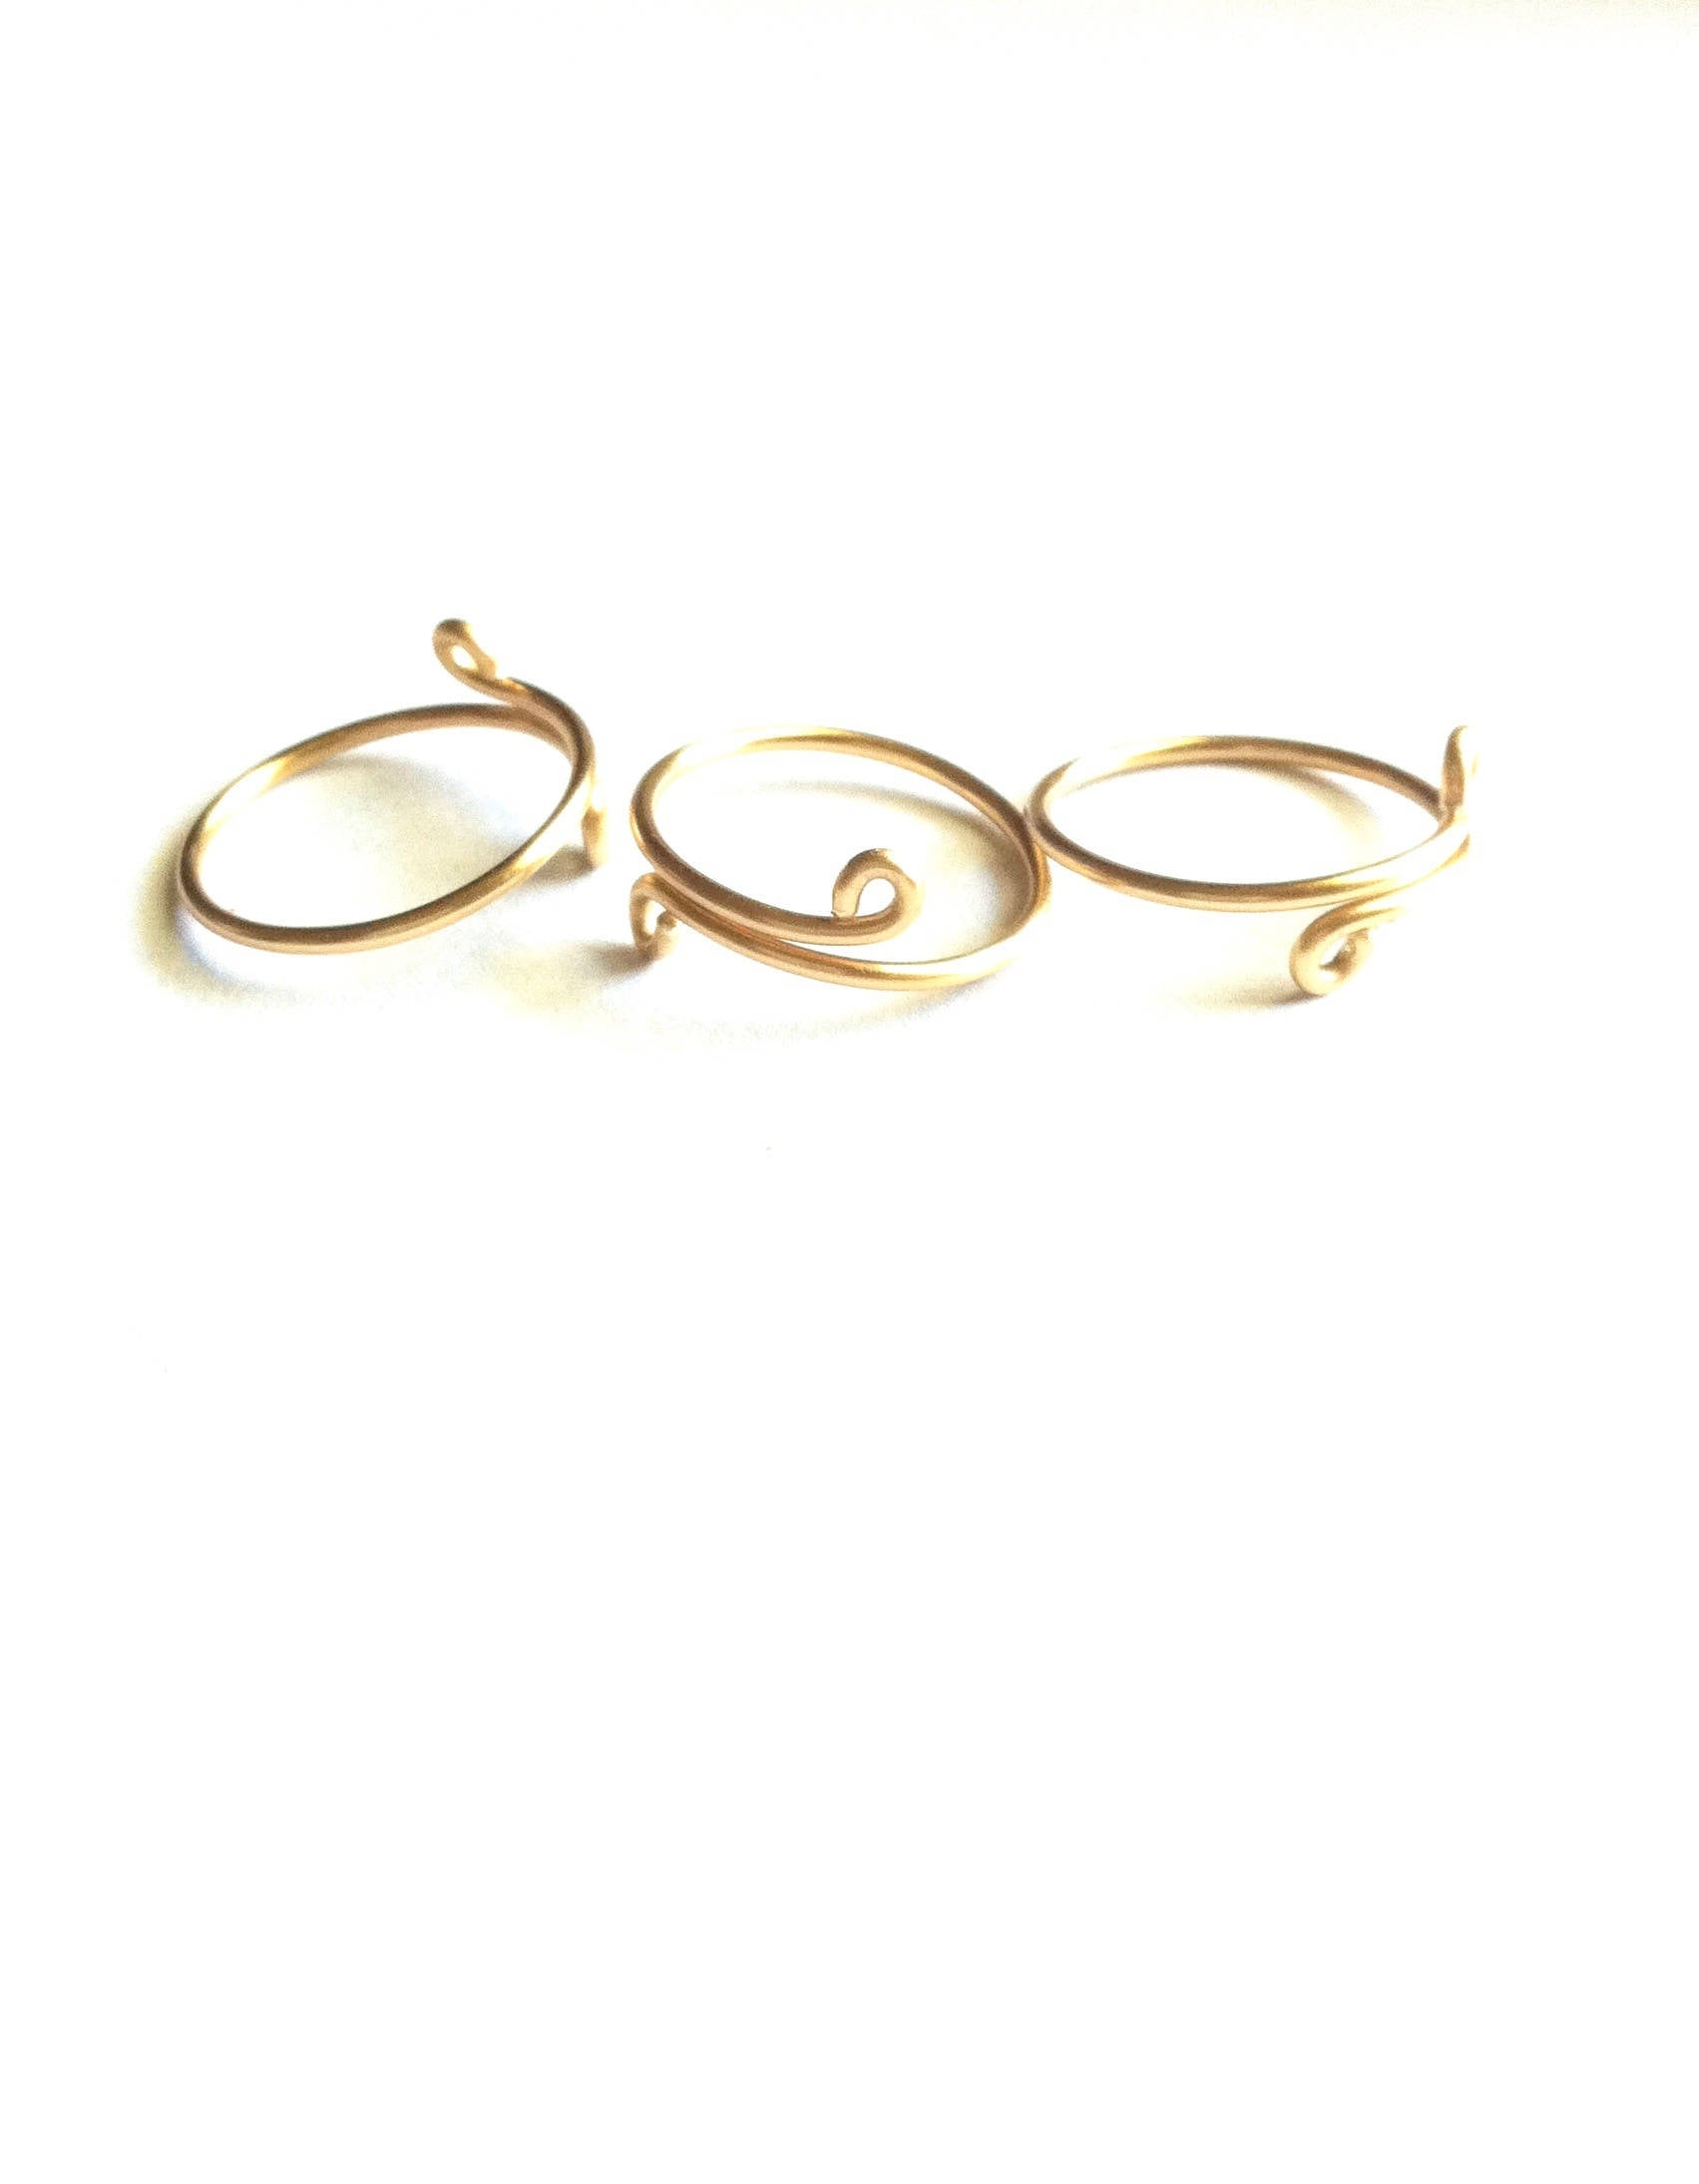 Minimalist Adjustable Midi Knuckle Ring Set of 3 Rings | IB Jewelry